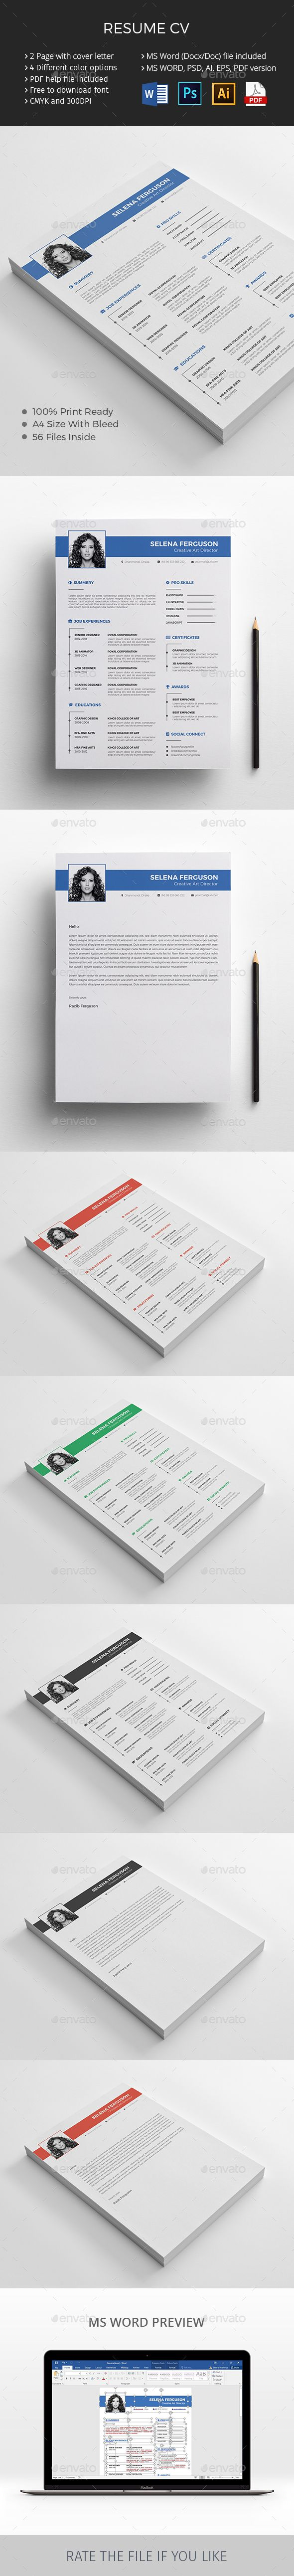 how to update resume%0A Resume CV  Resumes Stationery Download here  https   graphicriver net